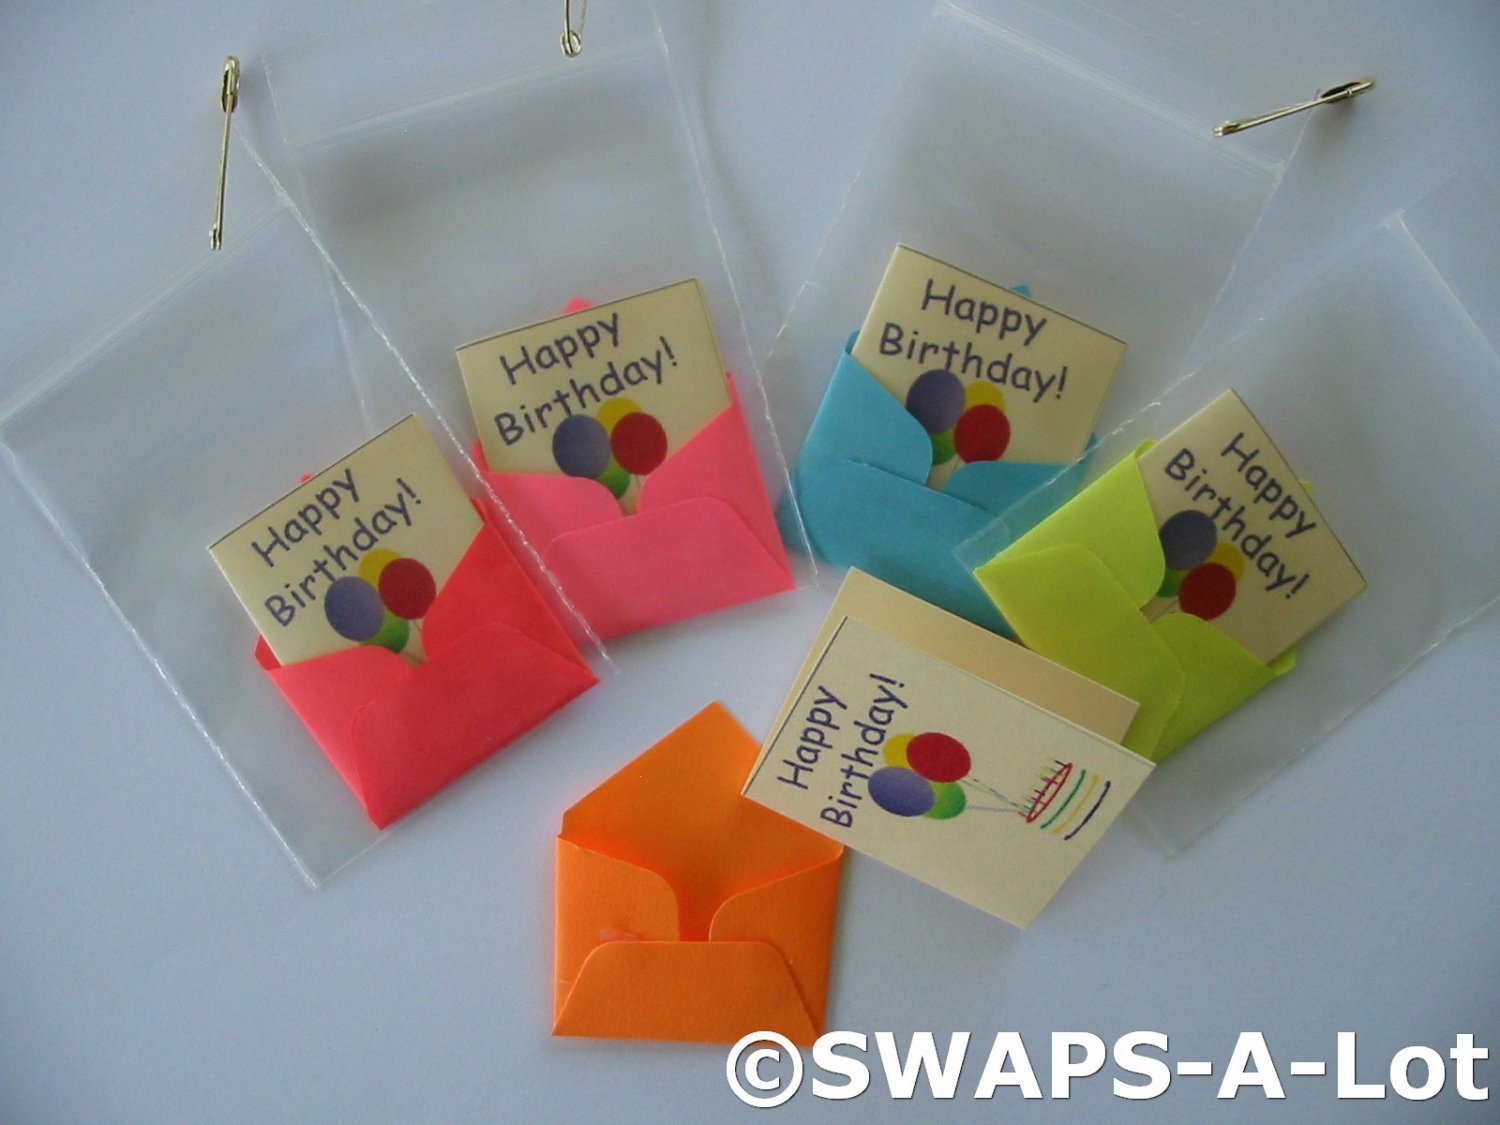 Mini happy birthday cardenvelope swaps kit for girl kids scout makes 25 bookmarktalkfo Images